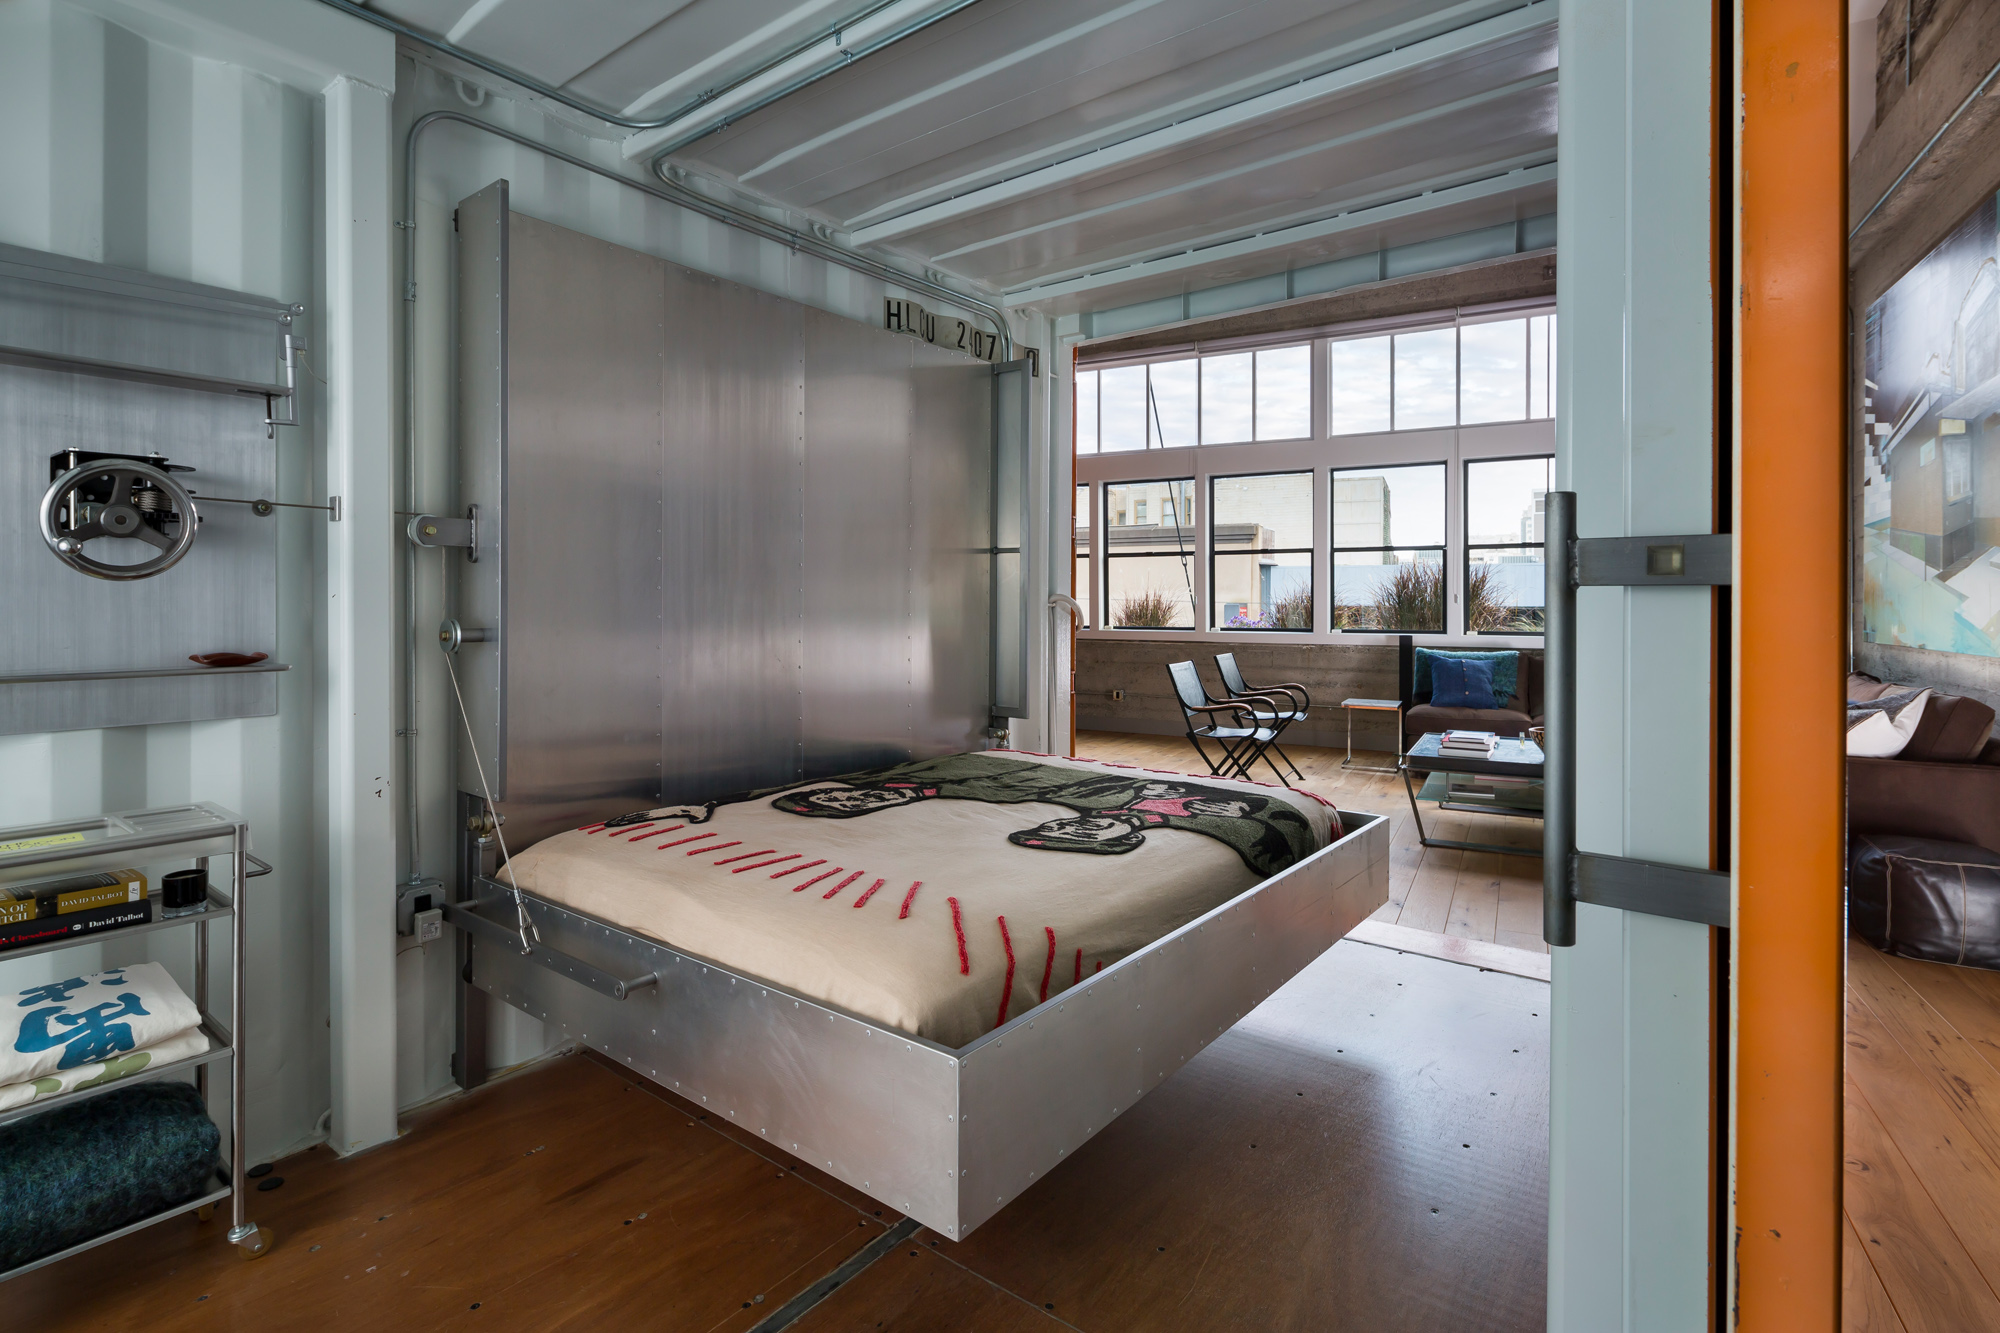 San Francisco Shipping Container Home Scores 5 2 Million